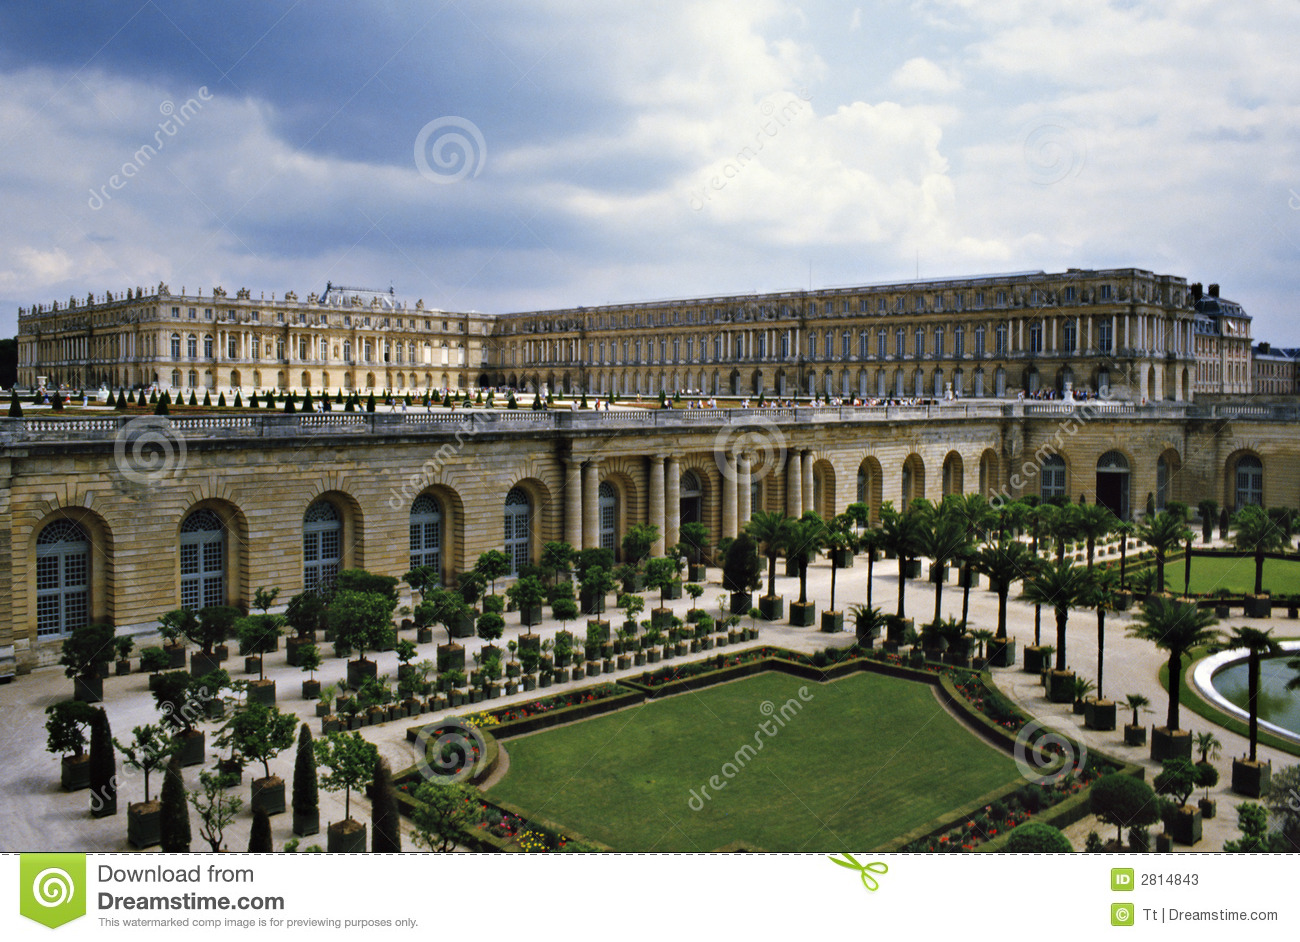 versailles schloss stockbild bild von dach kultur garten 2814843. Black Bedroom Furniture Sets. Home Design Ideas